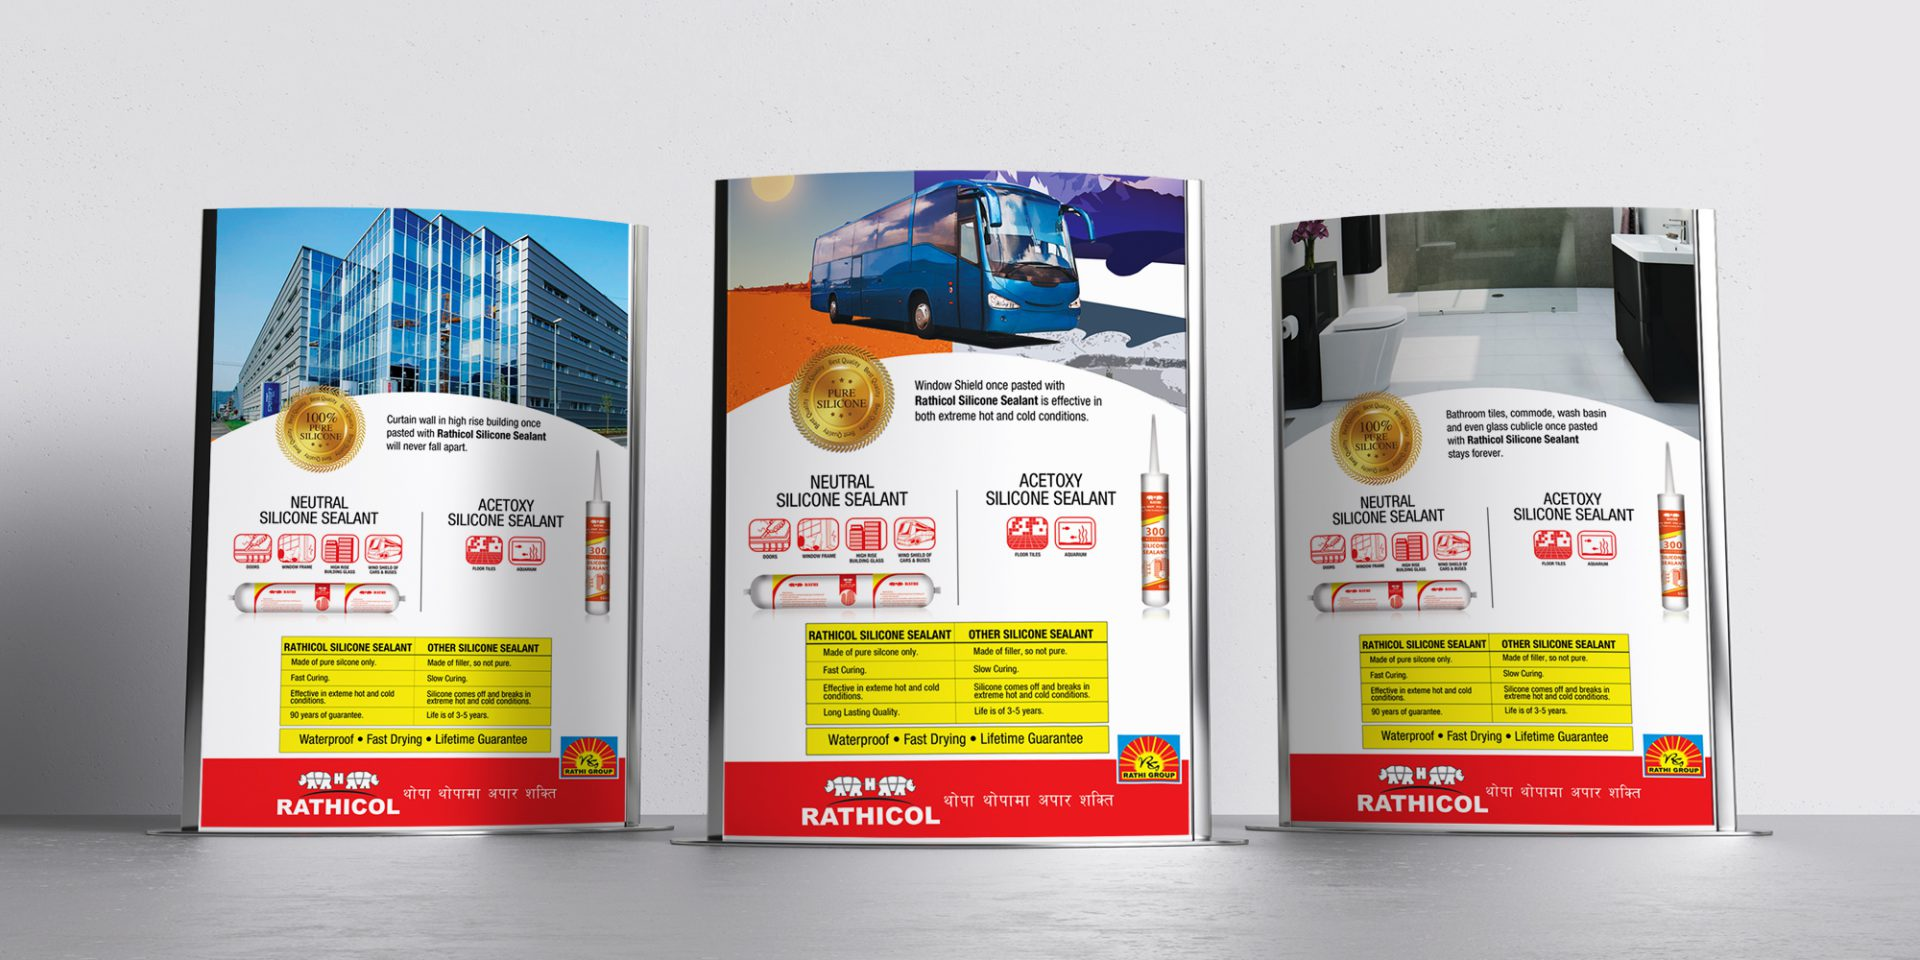 Rathicol Silicon Sealant Ads